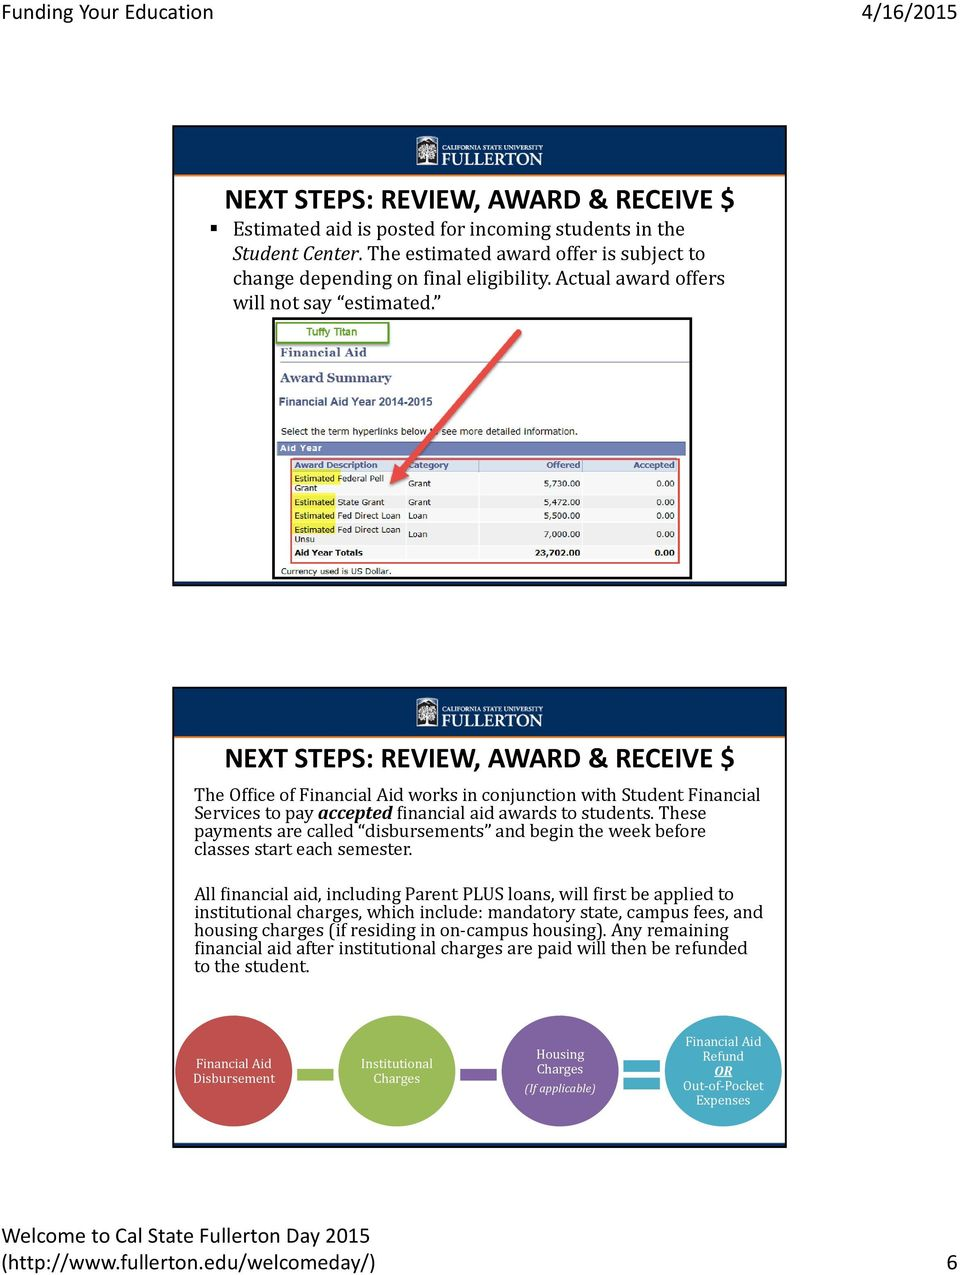 NEXT STEPS: REVIEW, AWARD & RECEIVE $ The Office of Financial Aid works in conjunction with Student Financial Services to pay accepted financial aid awards to students.